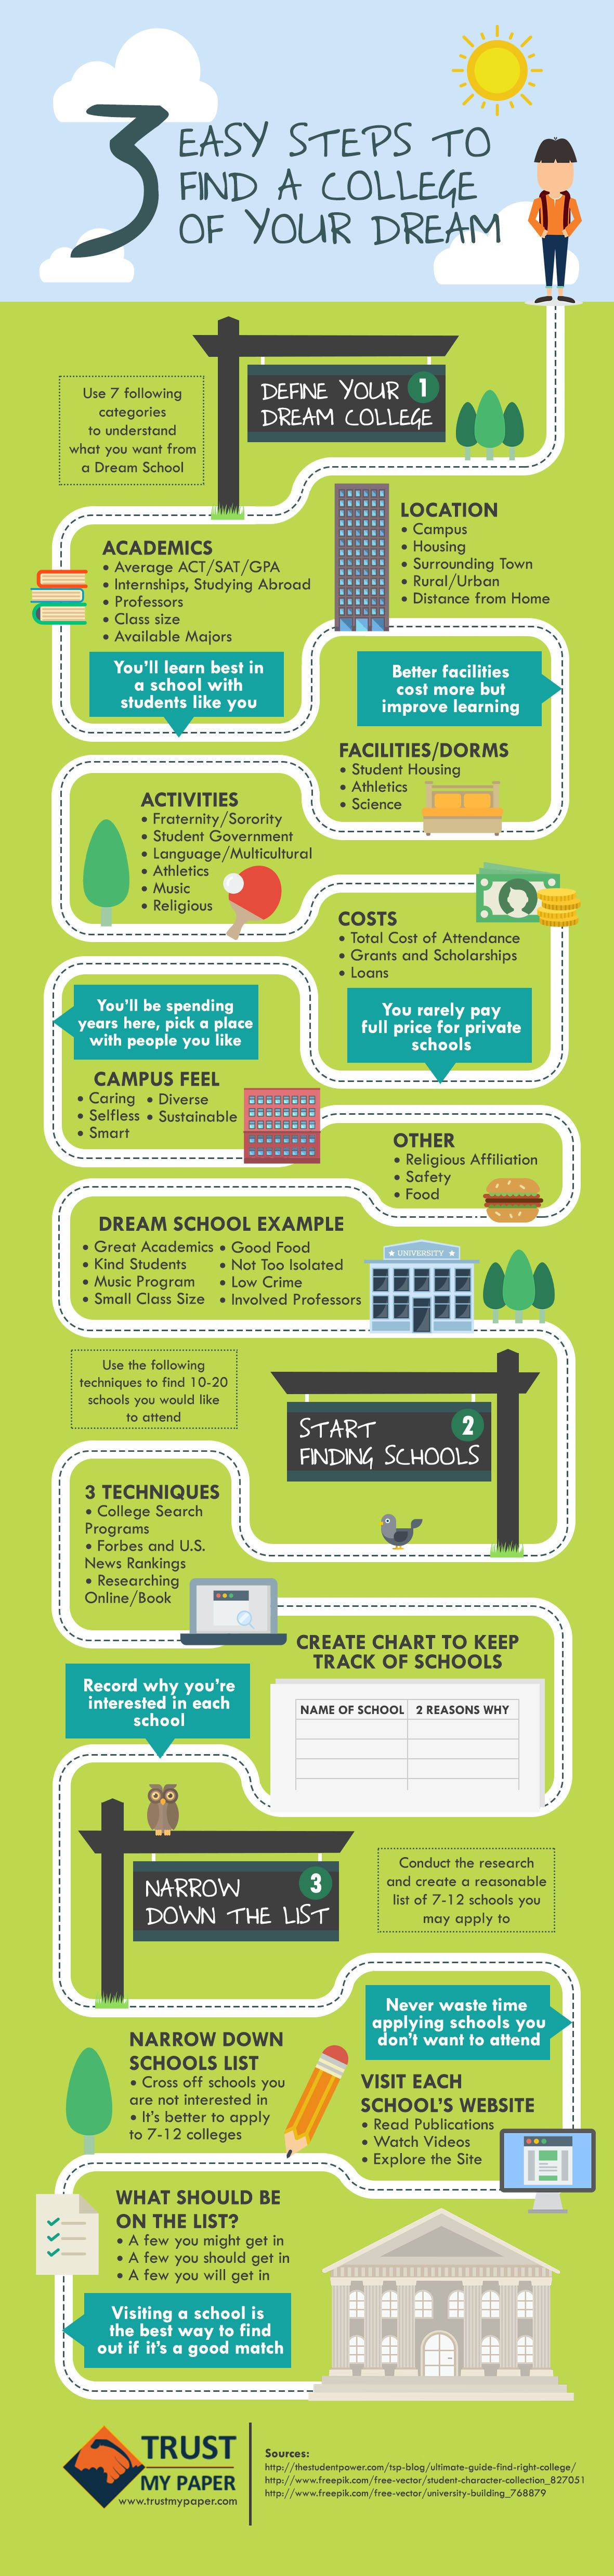 3 Easy Steps Find A College Of Your Dream #Infographic